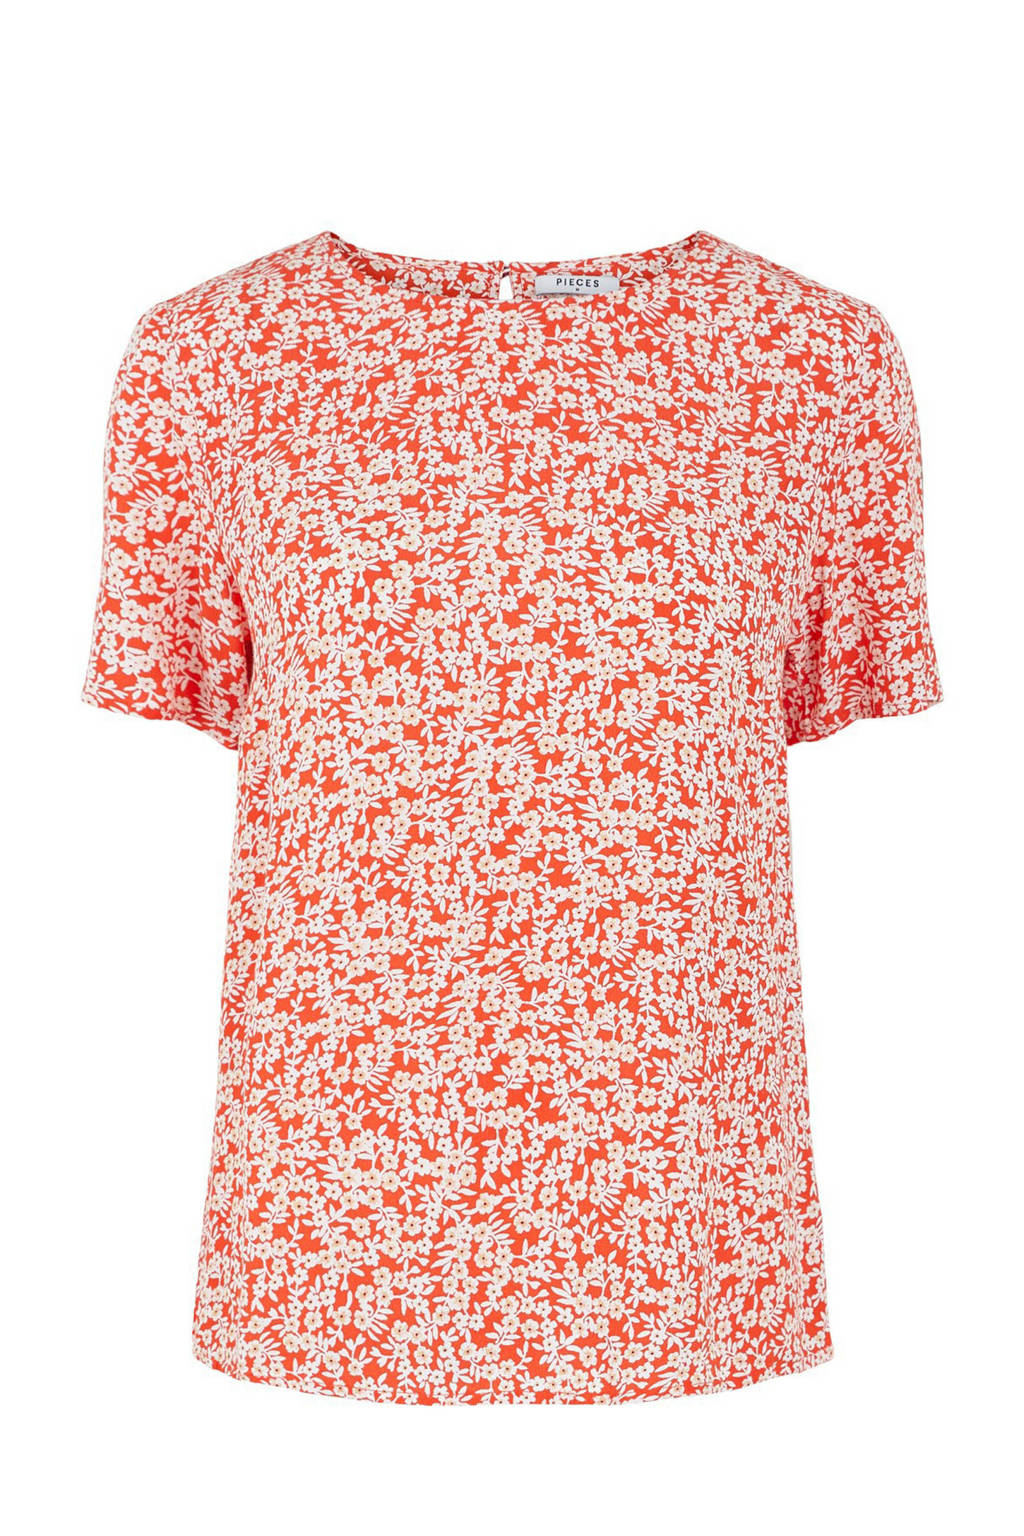 PIECES top met all over print rood, Rood